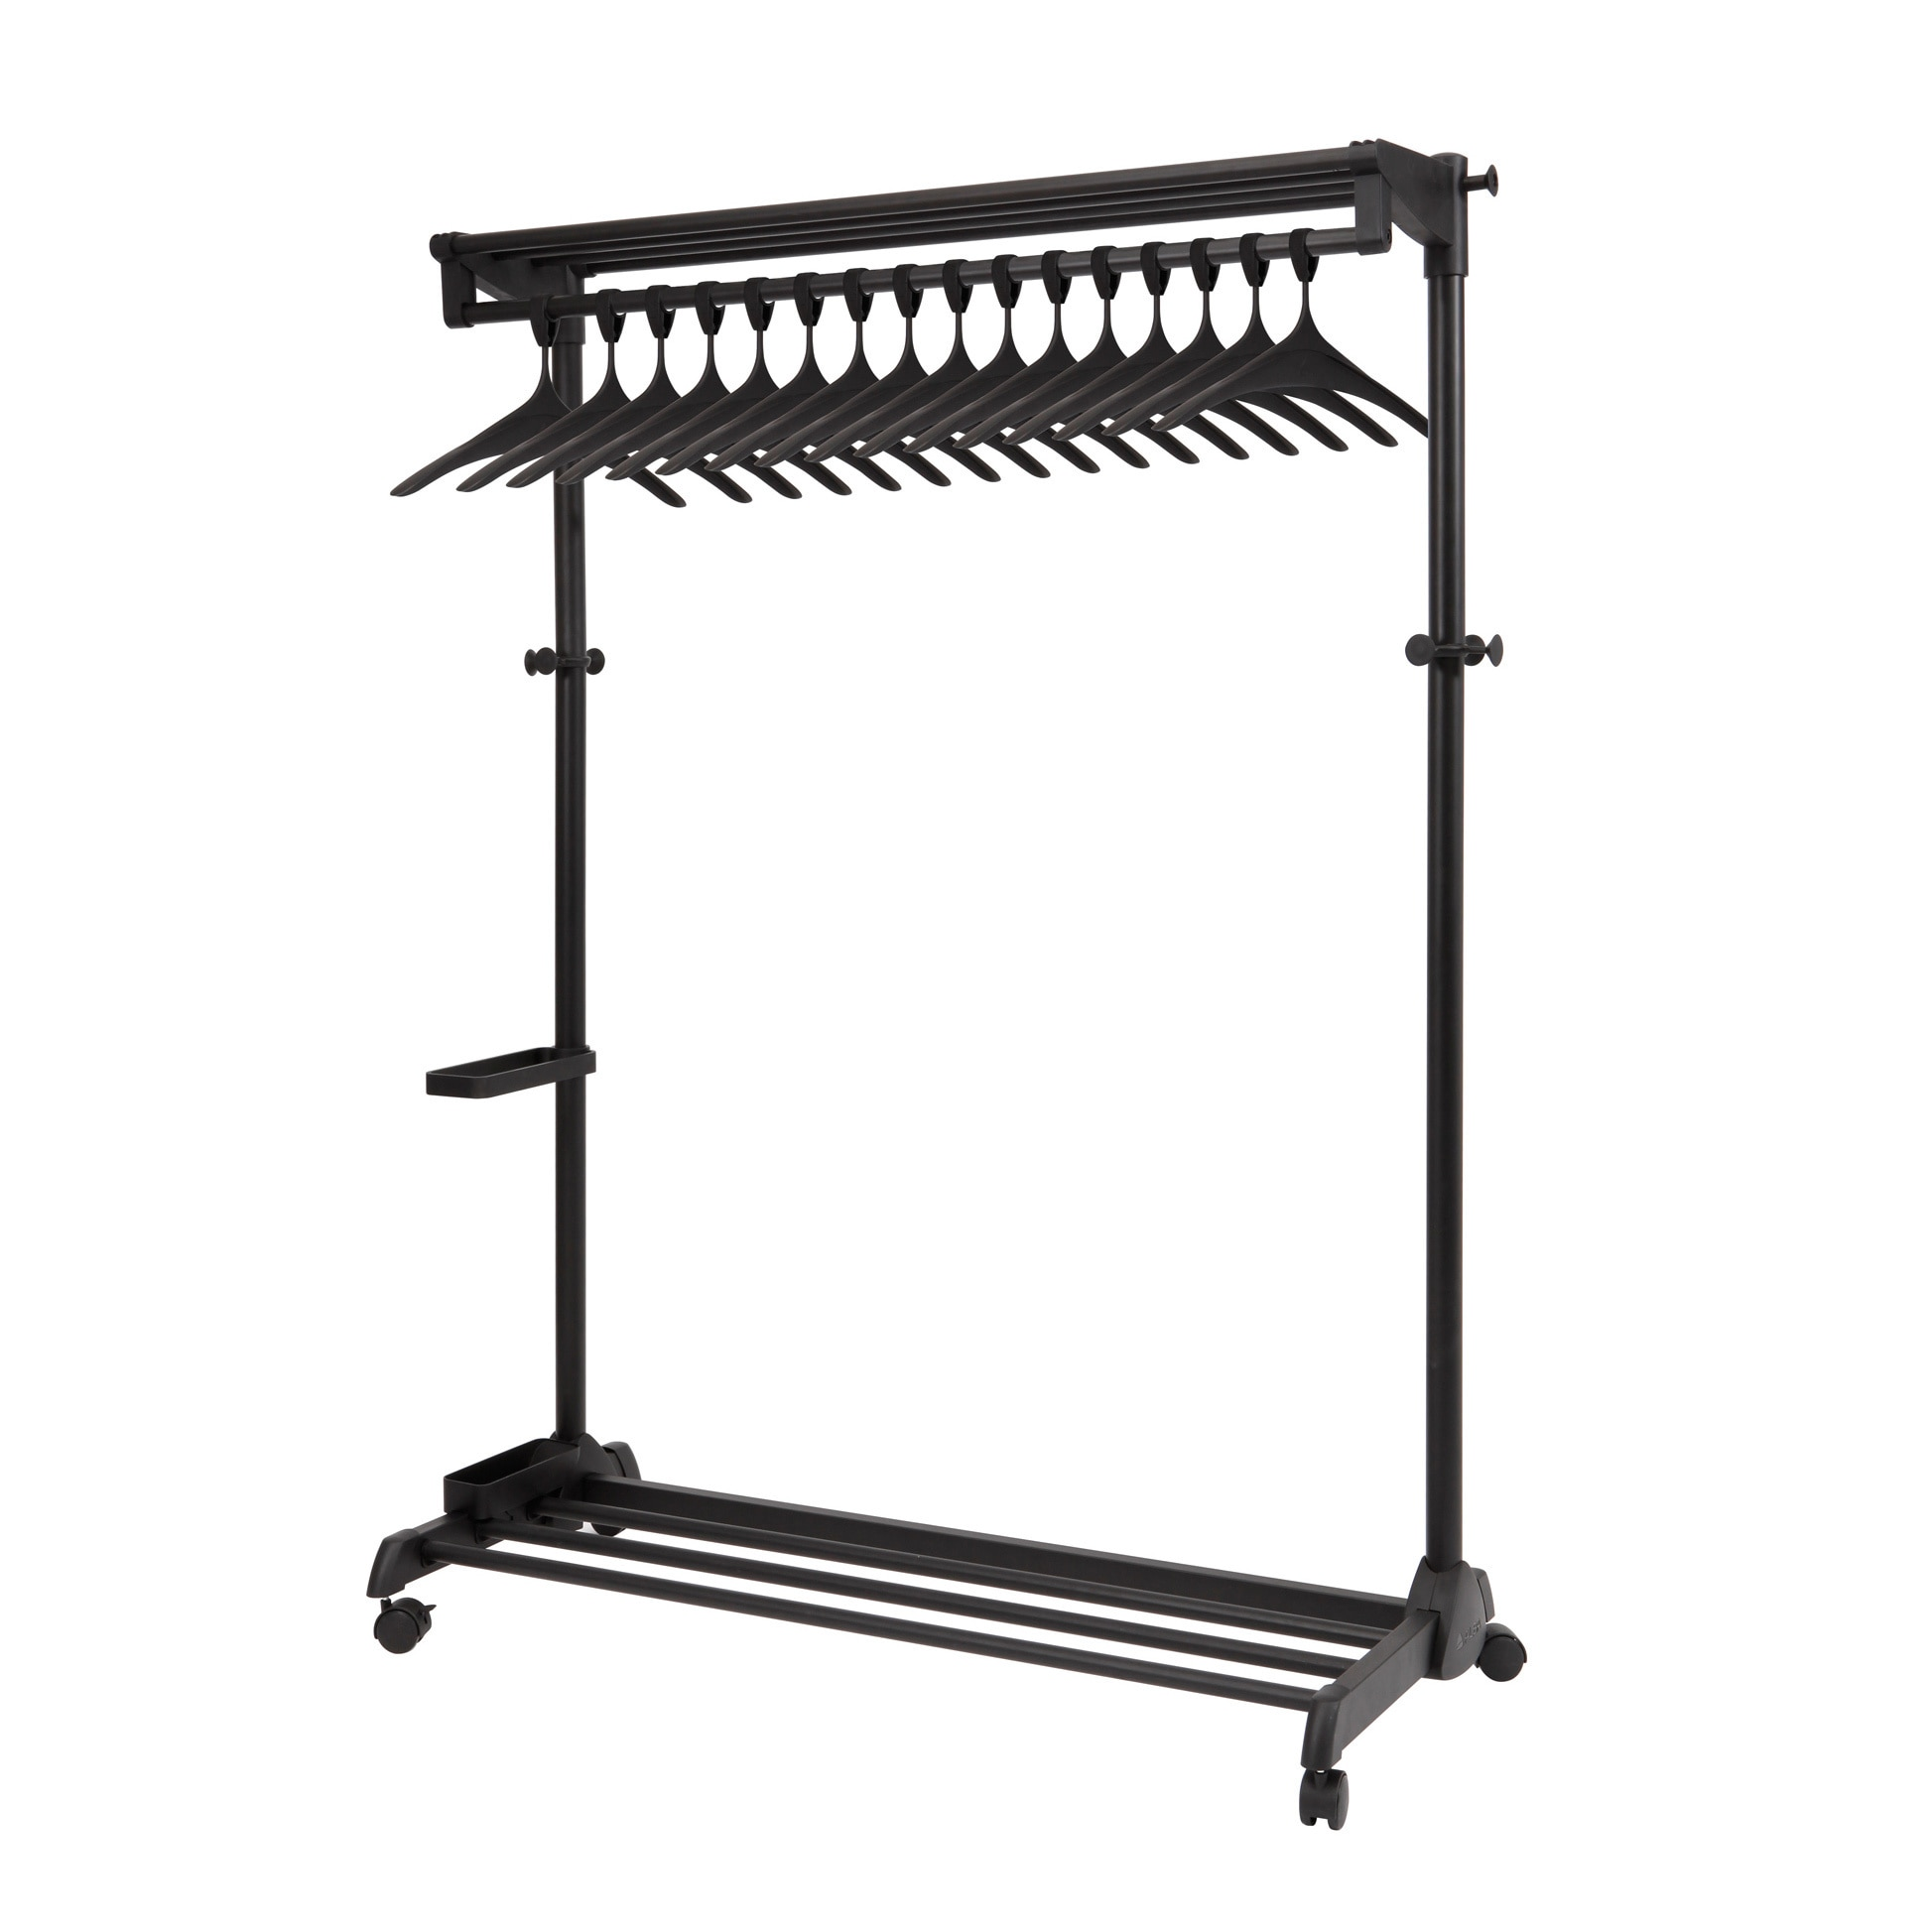 Alba Botanica Black Garment Rack with Theft Deterrent Han...